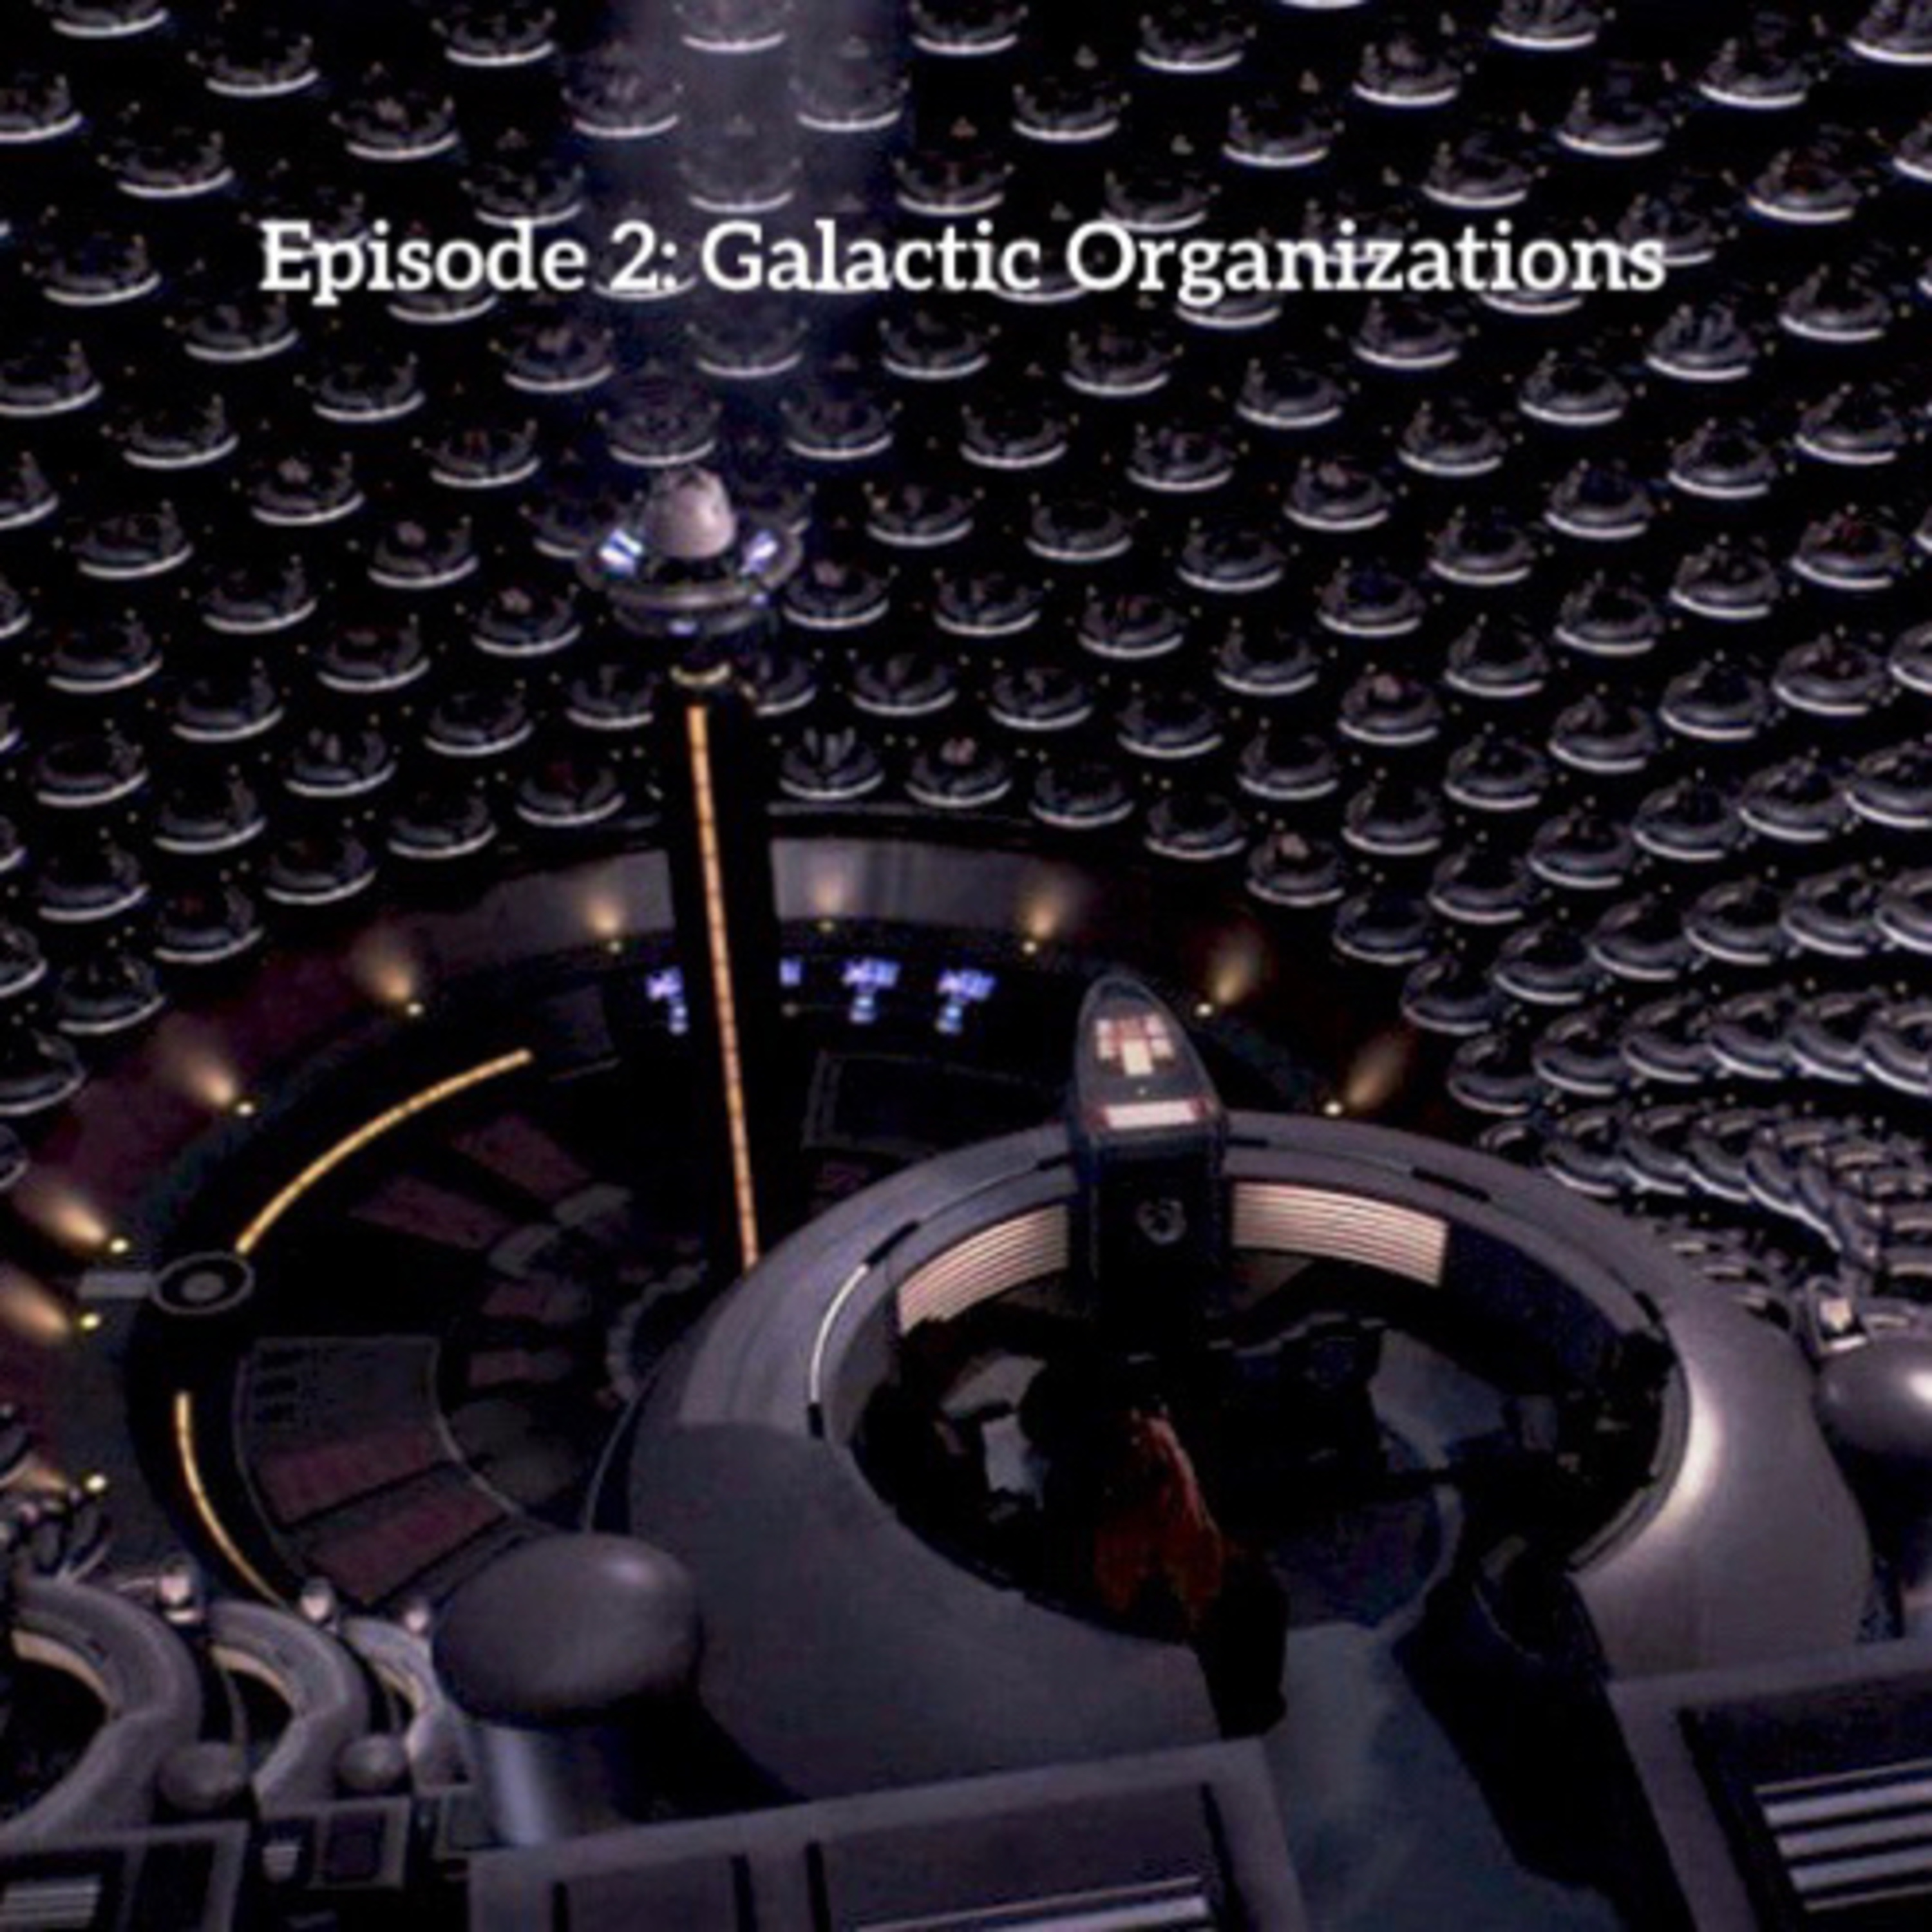 Arguments As To Why The Phantom Menace is a Great Star Wars Movie - Episode 2: Galactic Organizations